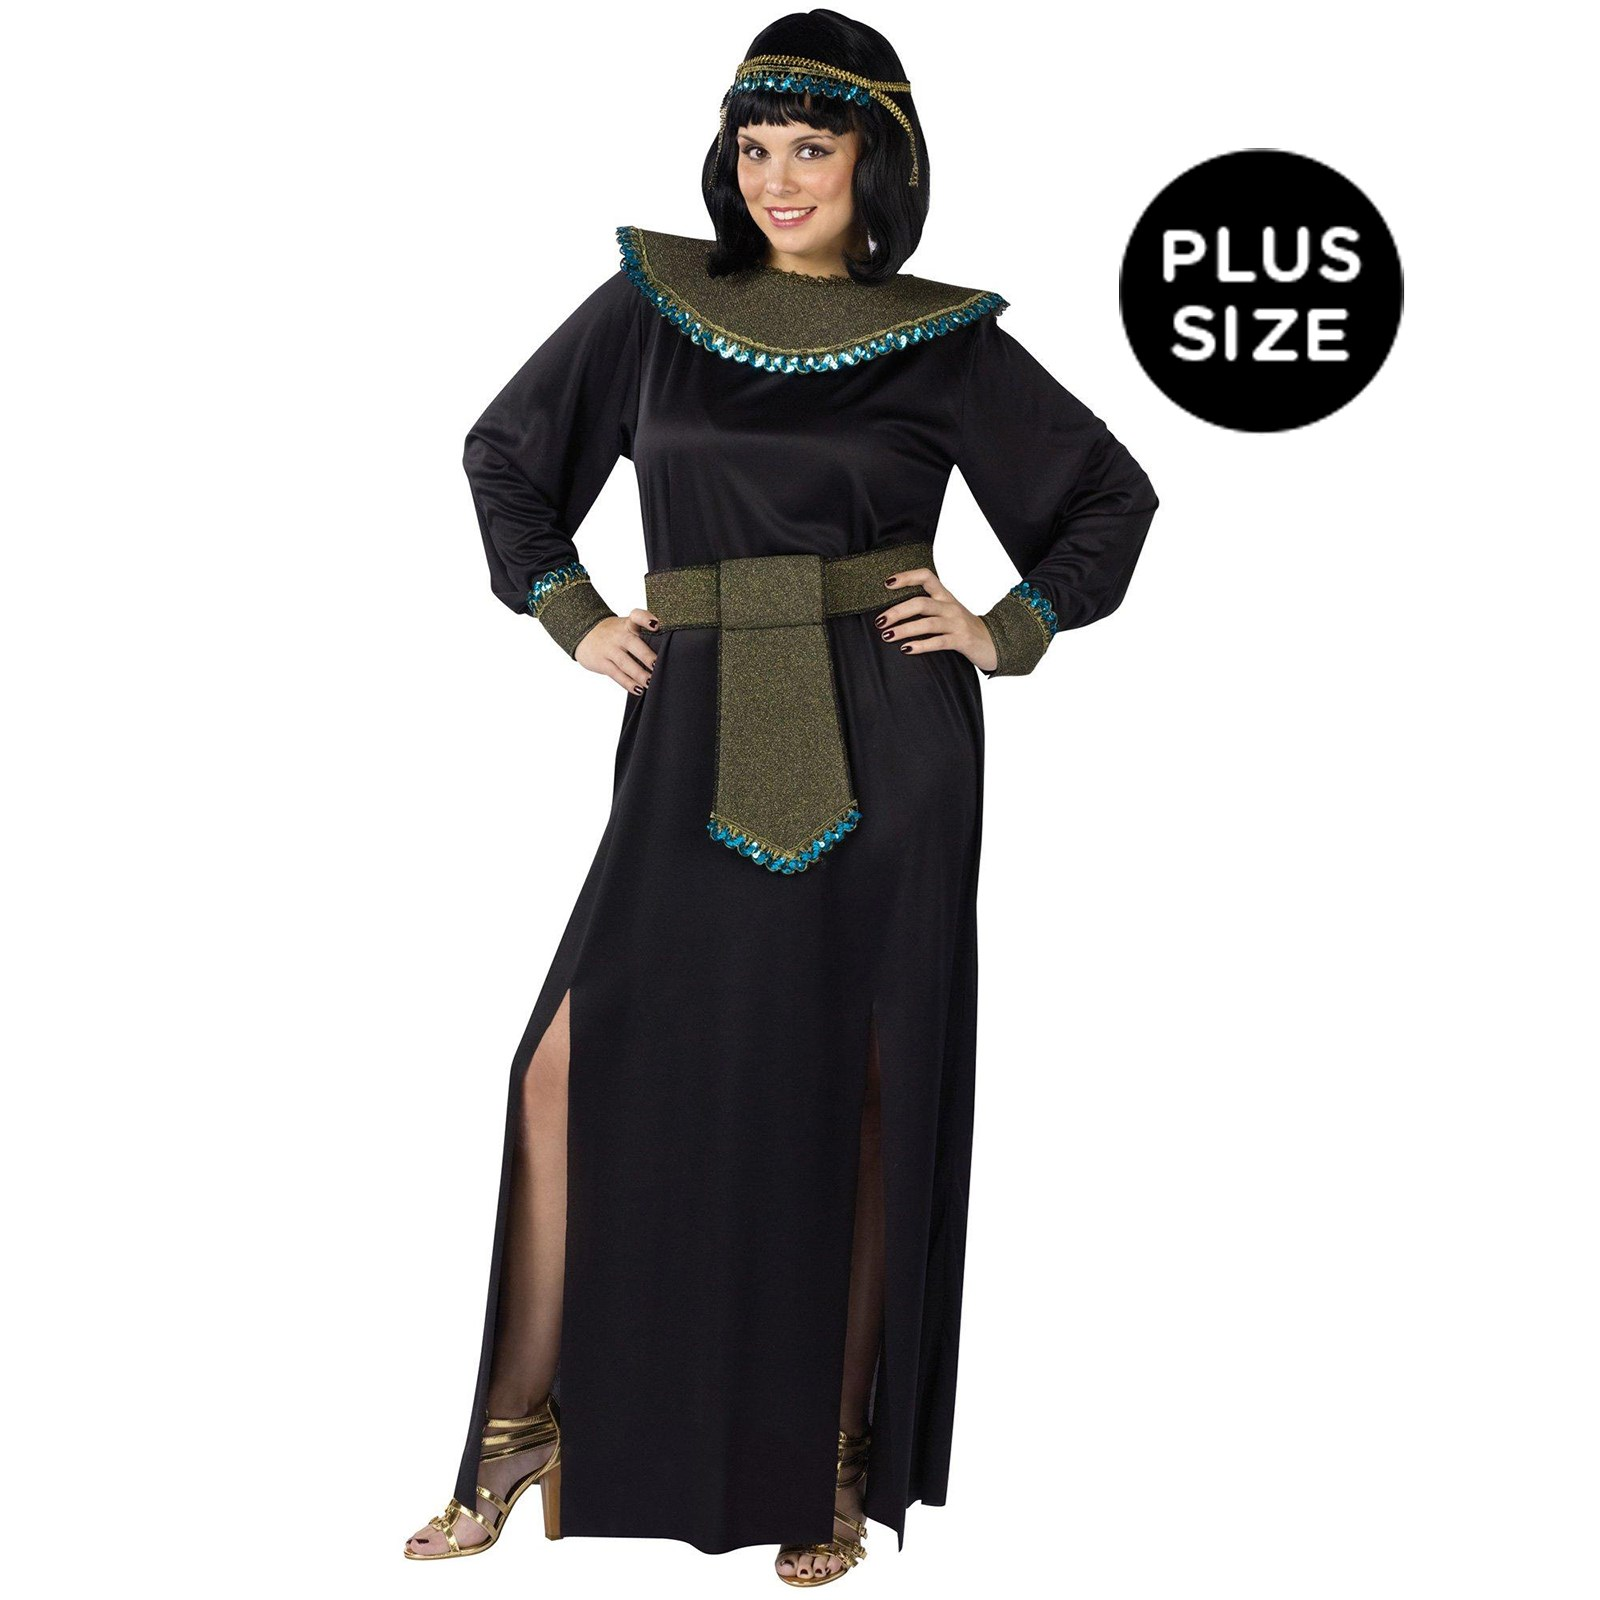 Image of Black/Gold Cleopatra Adult Plus Costume